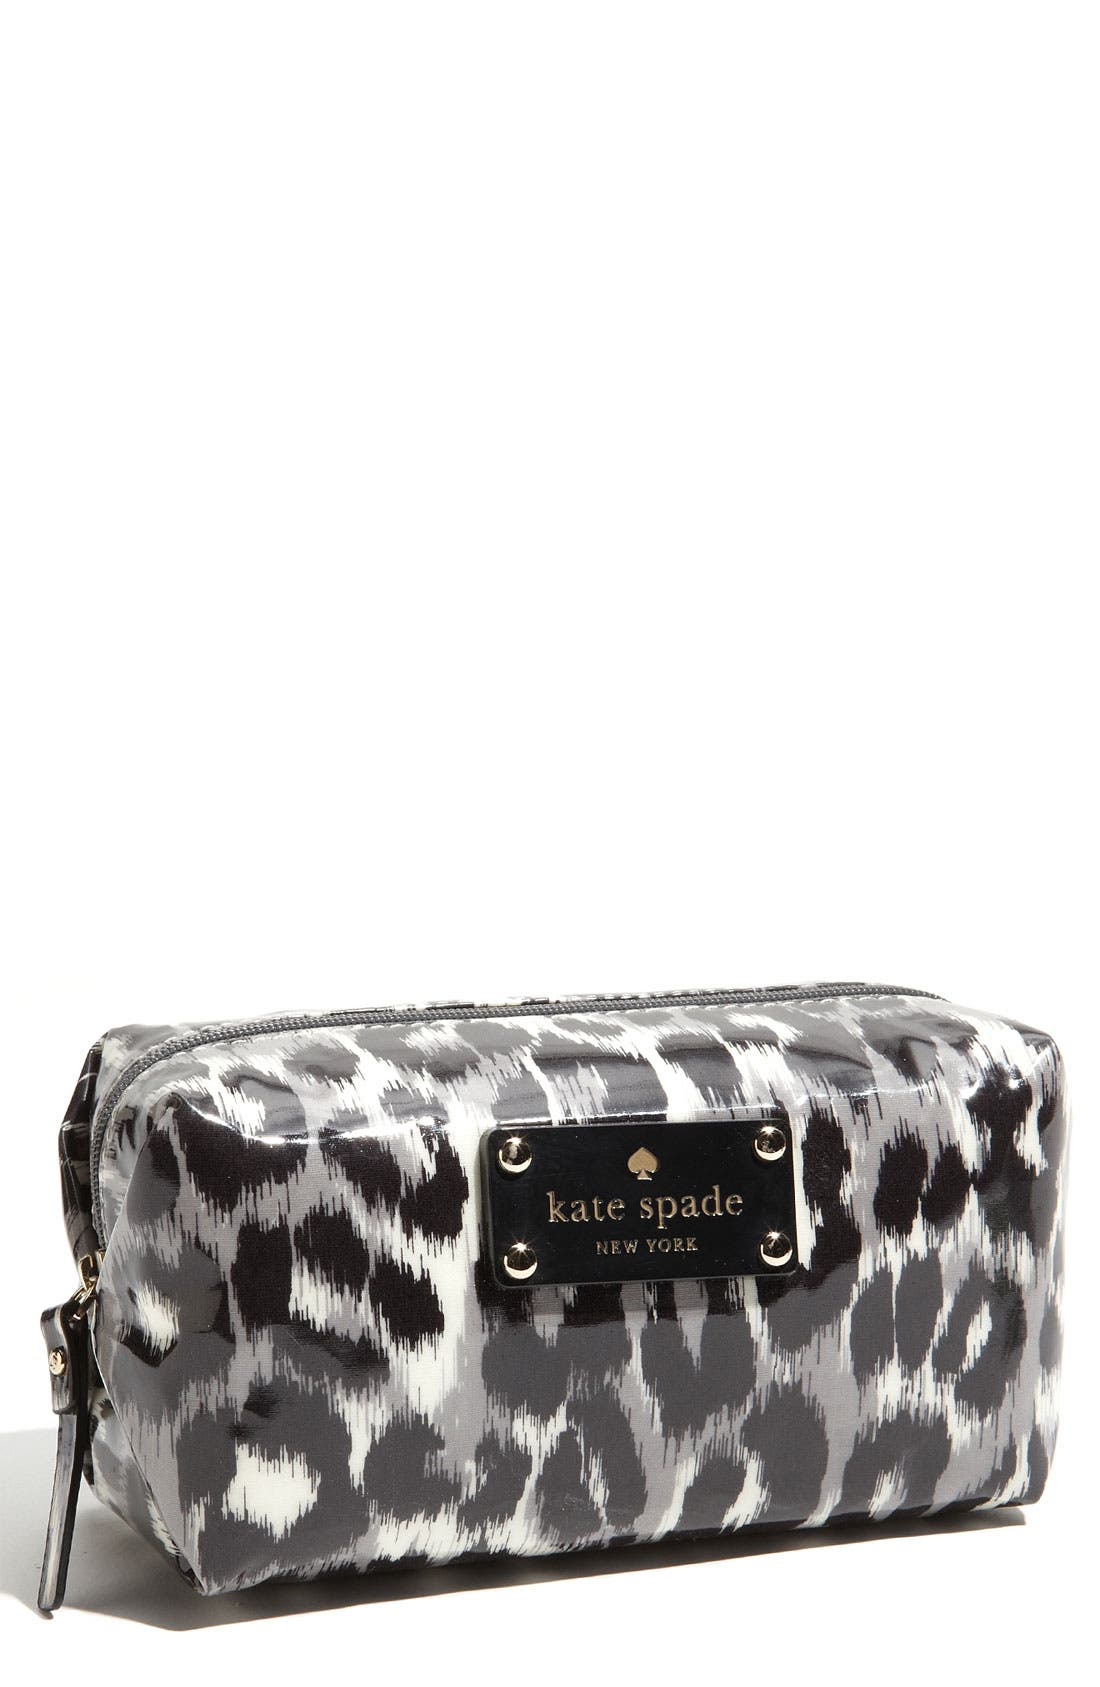 KATE SPADE NEW YORK 'daycation - leila' pouch, Main, color, 017